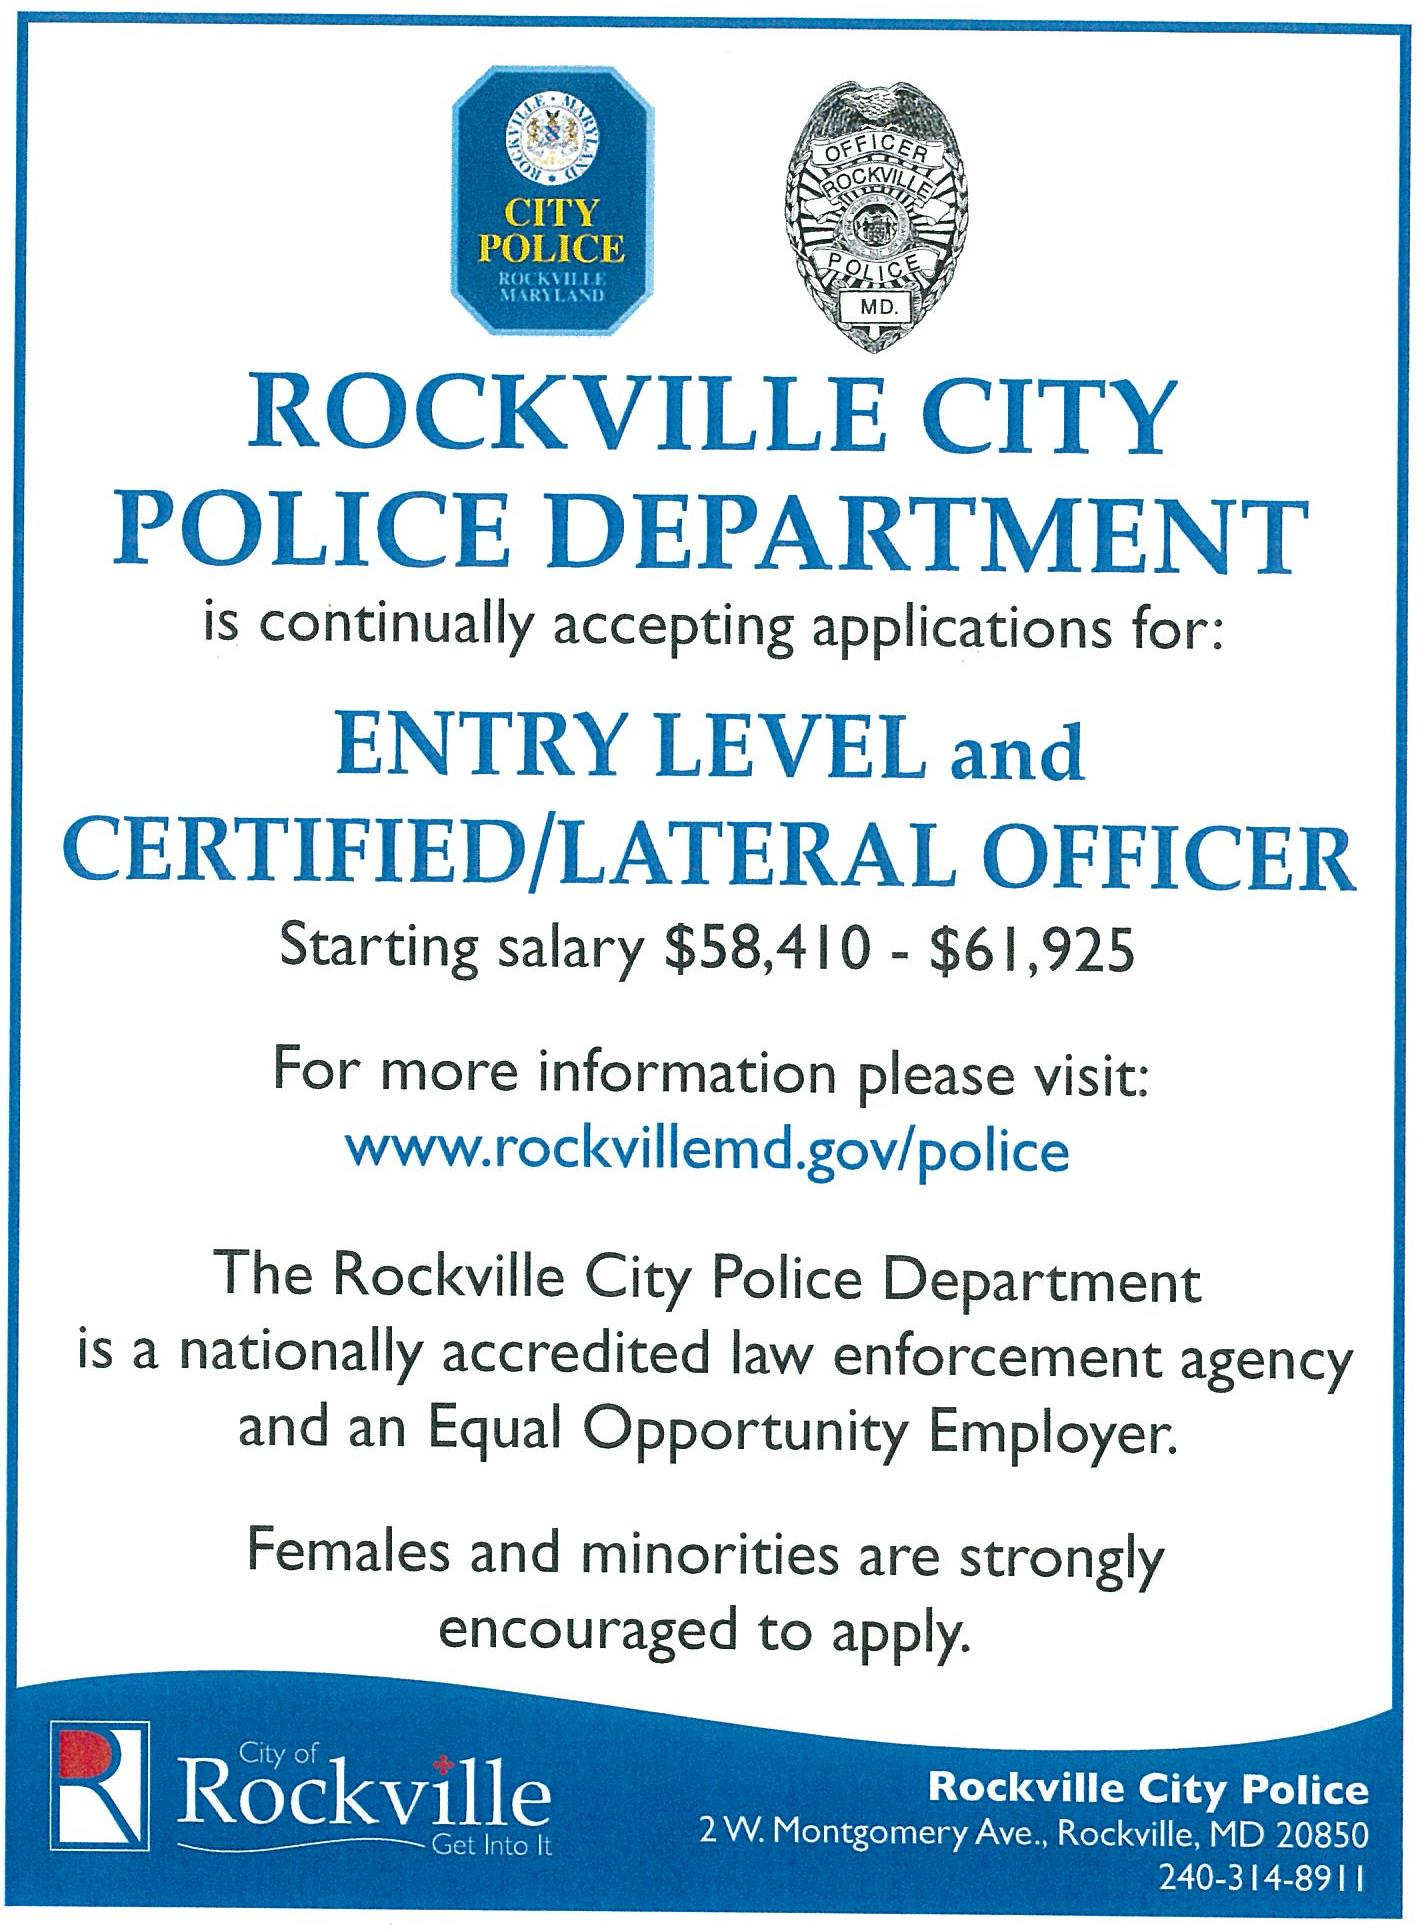 Police Application ad